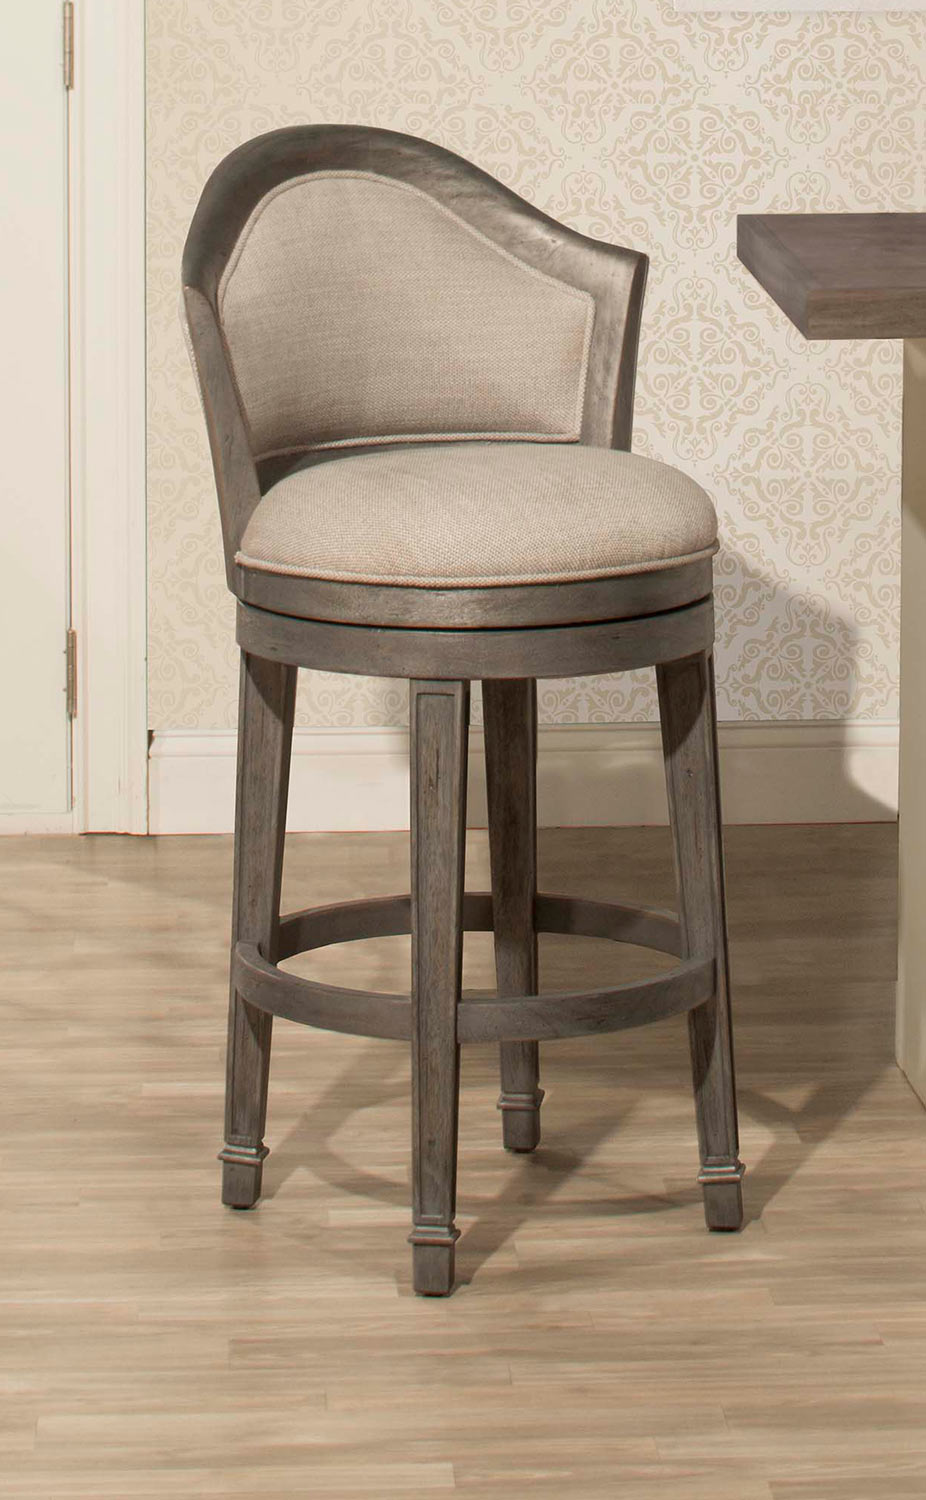 Hillsdale Monae Swivel Counter Stool - Dark Gray - Woven Gray Fabric